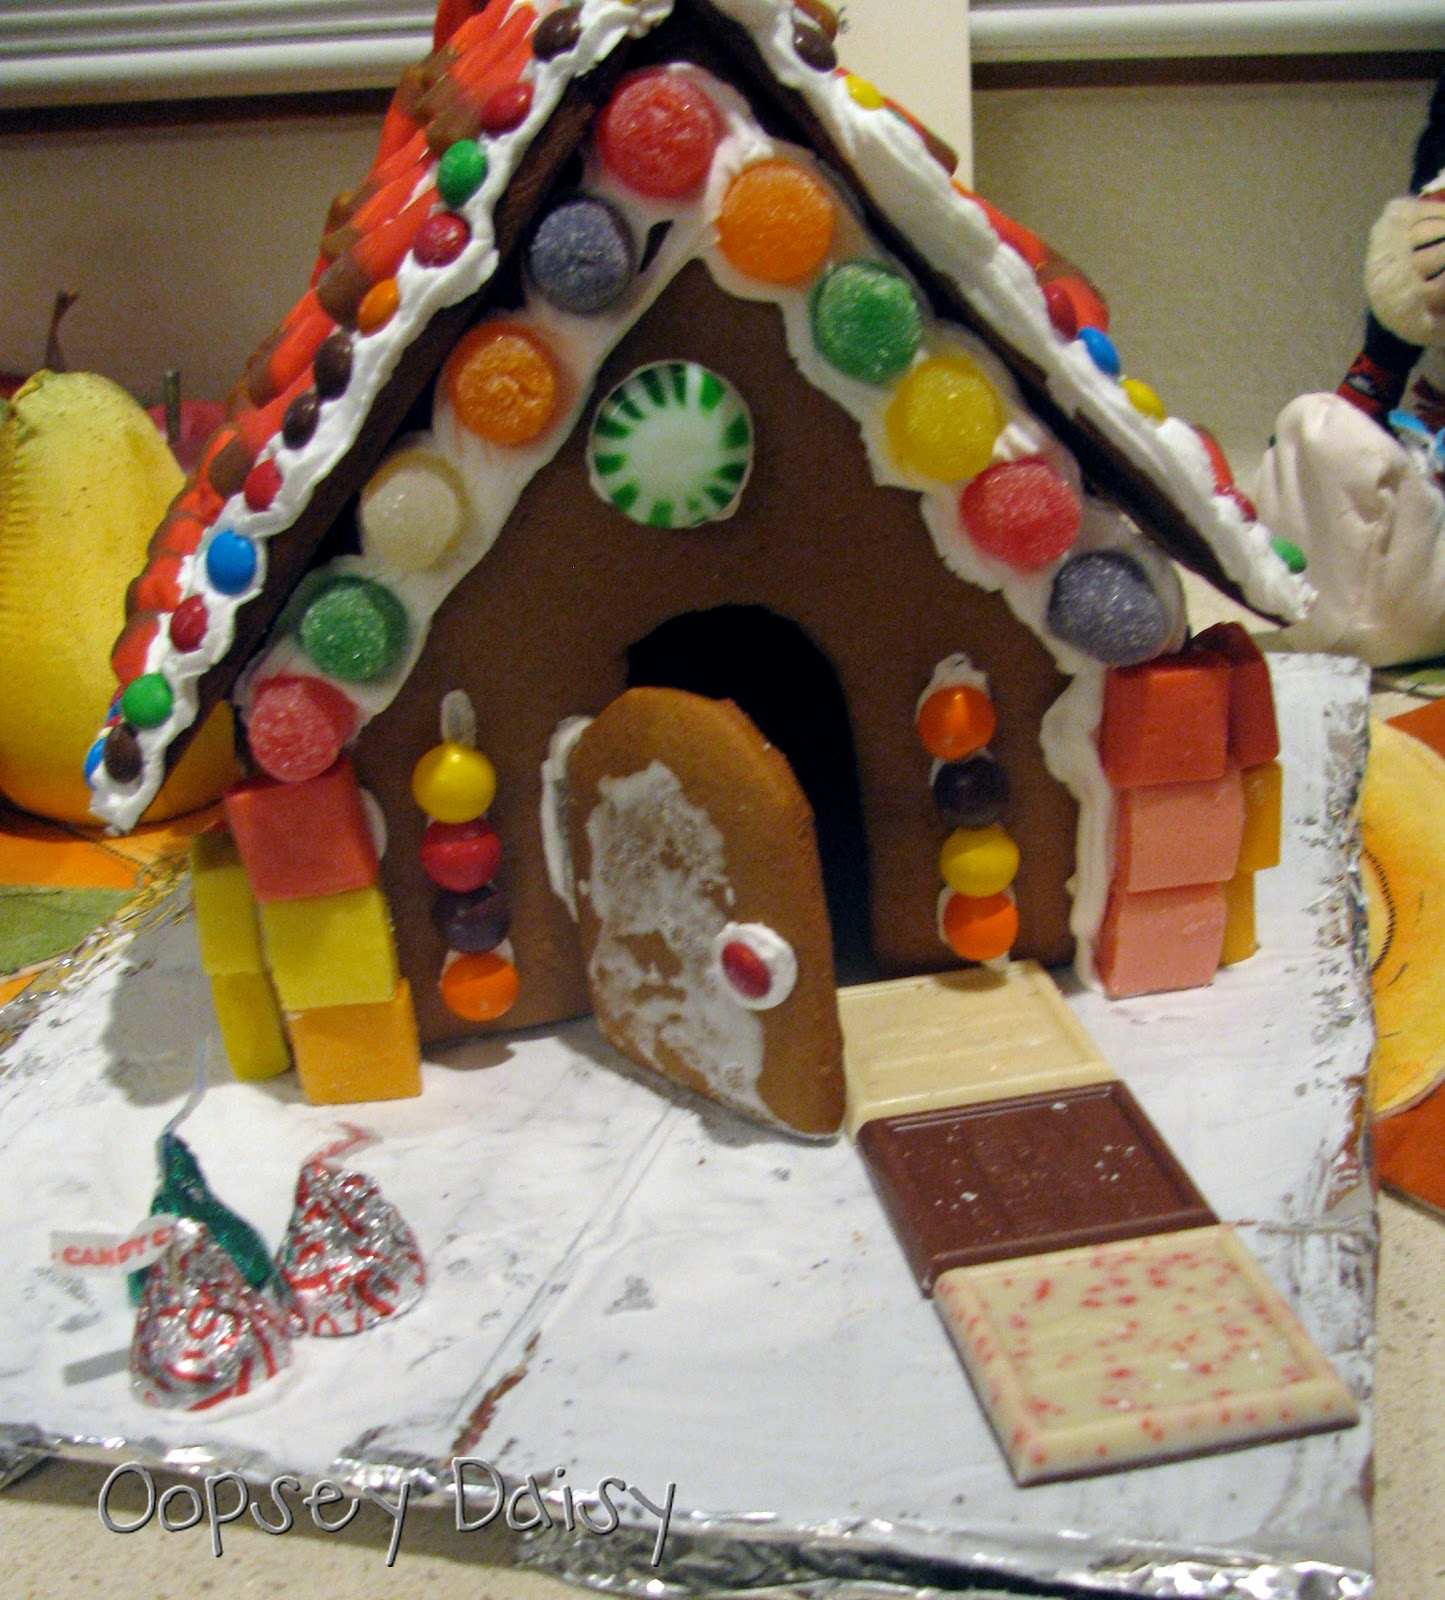 Gingerbread House Oopsey Daisy - Gingerbread house garage